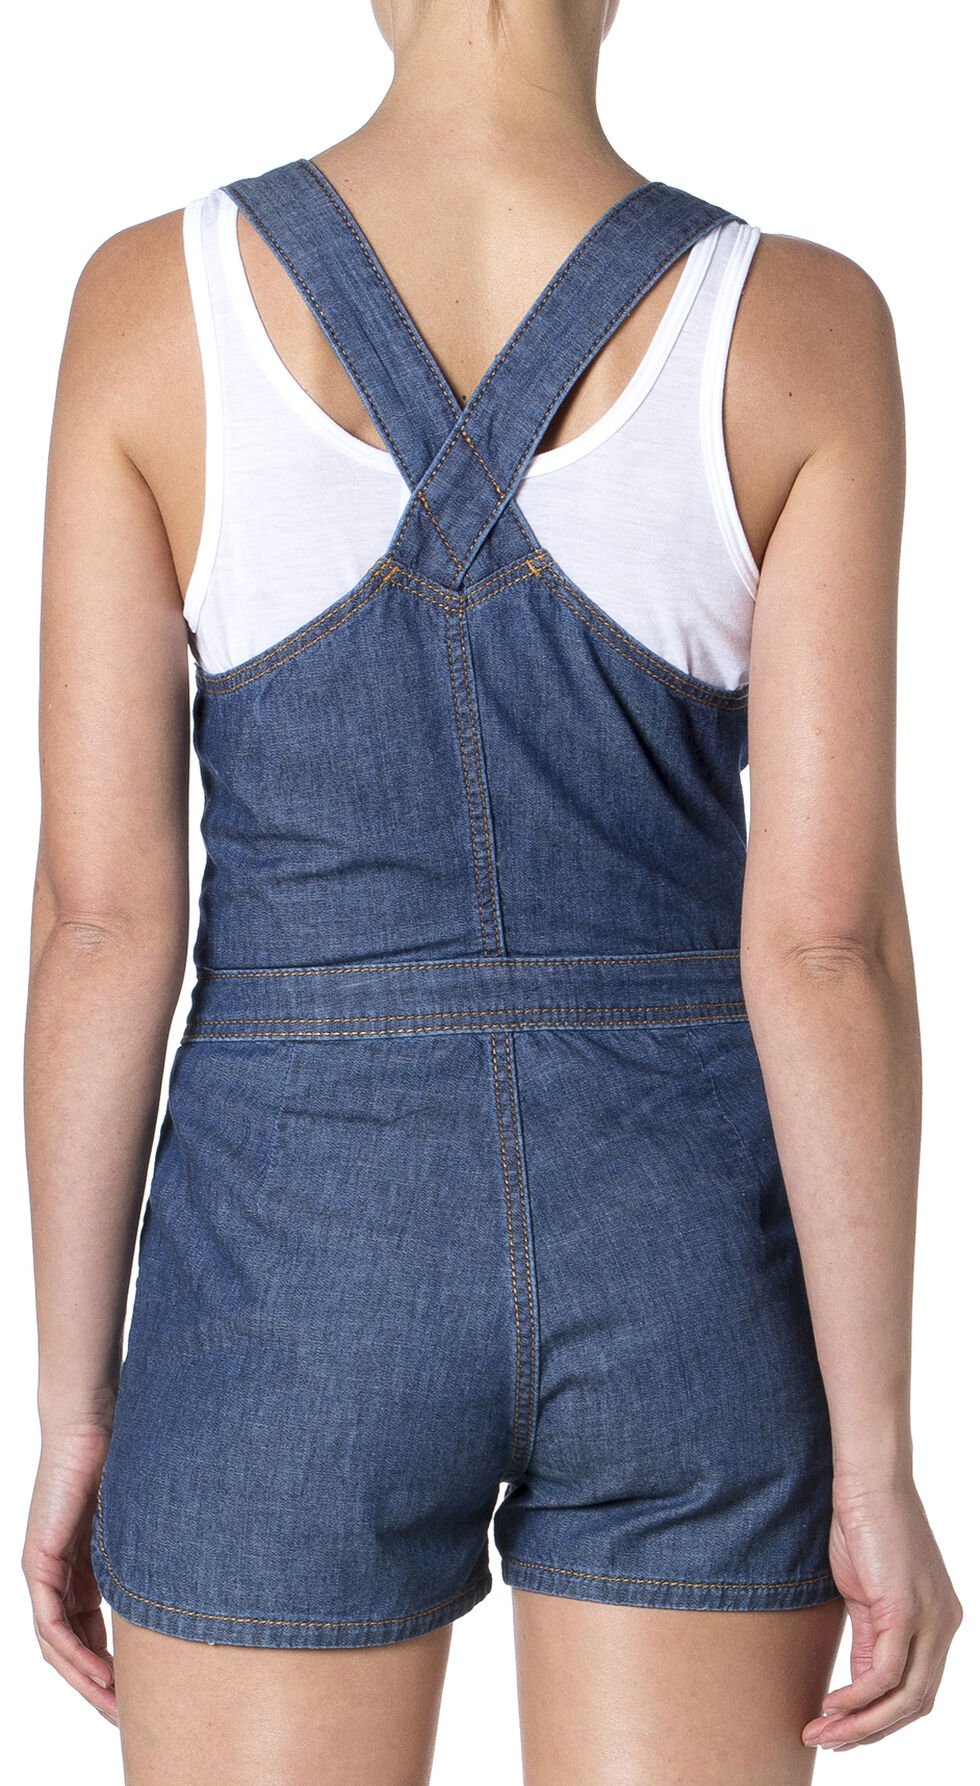 Miss Me Women's Keepsake Denim Romper, Denim, hi-res